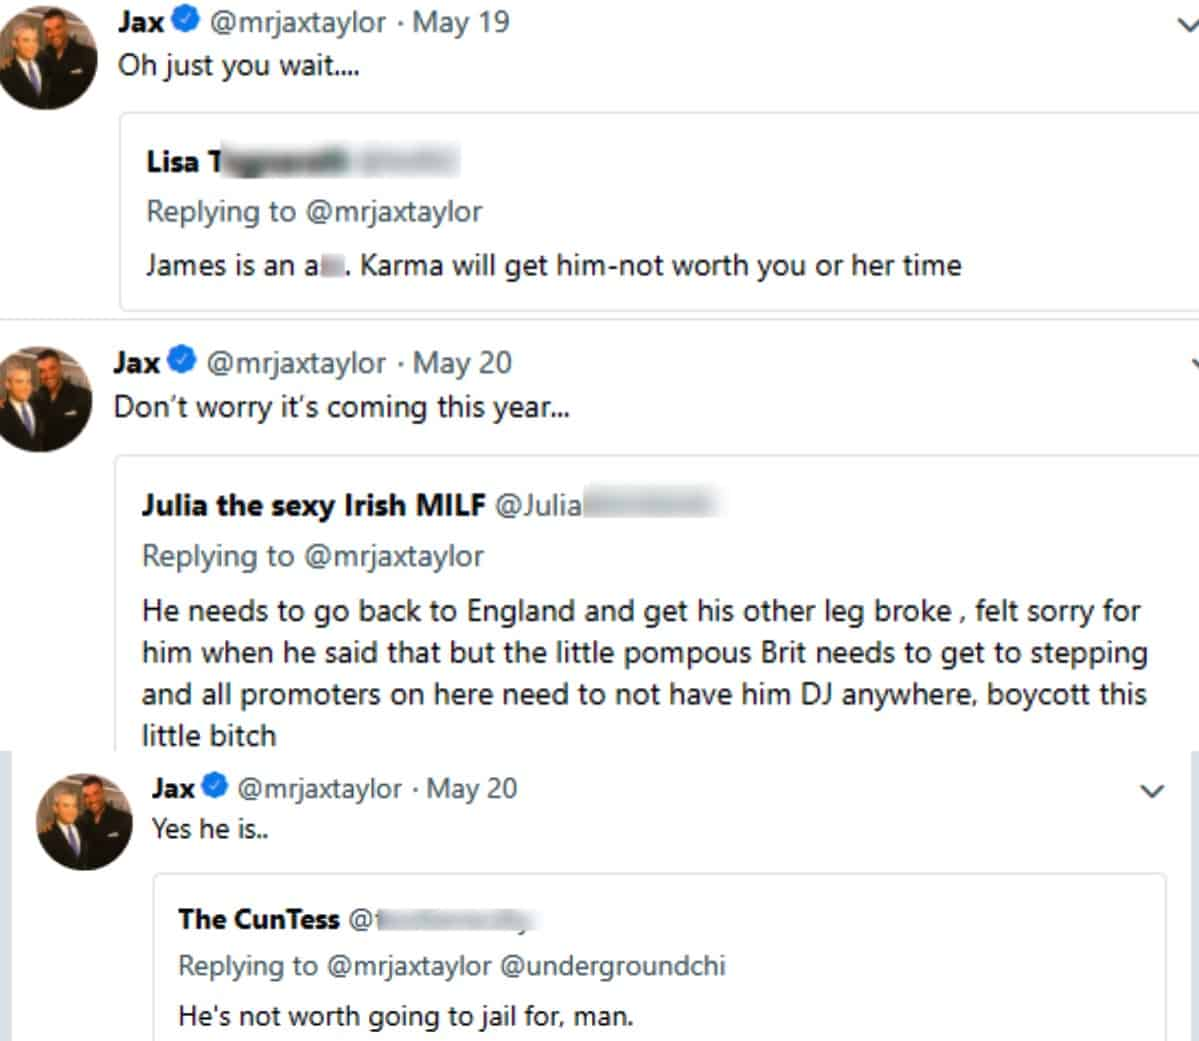 Jax Threatens James on Twitter